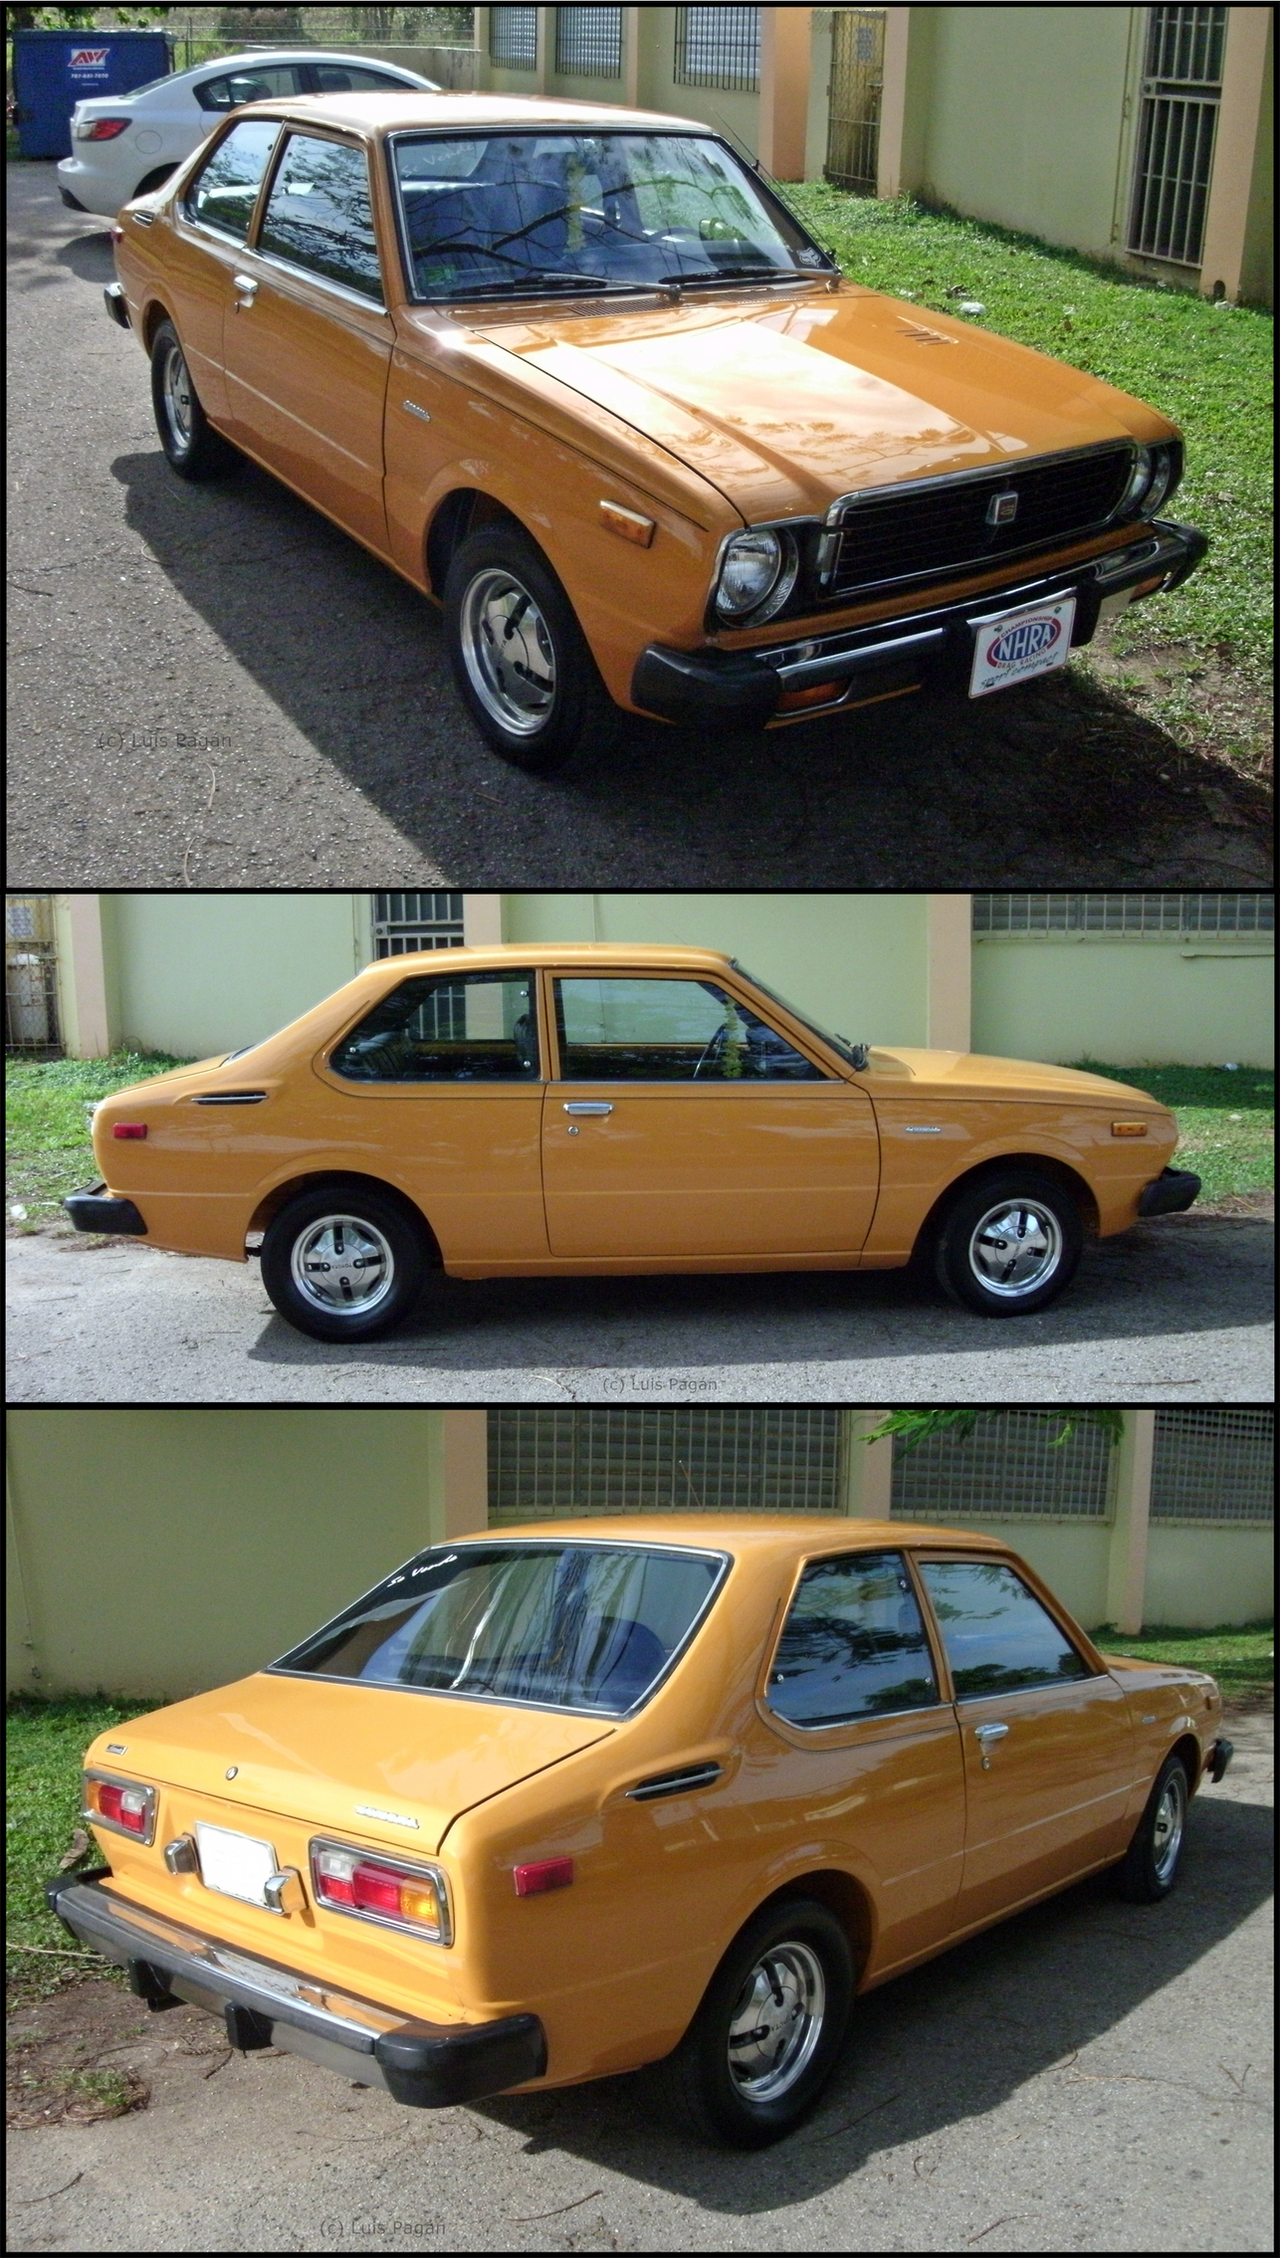 77' Toyota Corolla orange by Mister-Lou